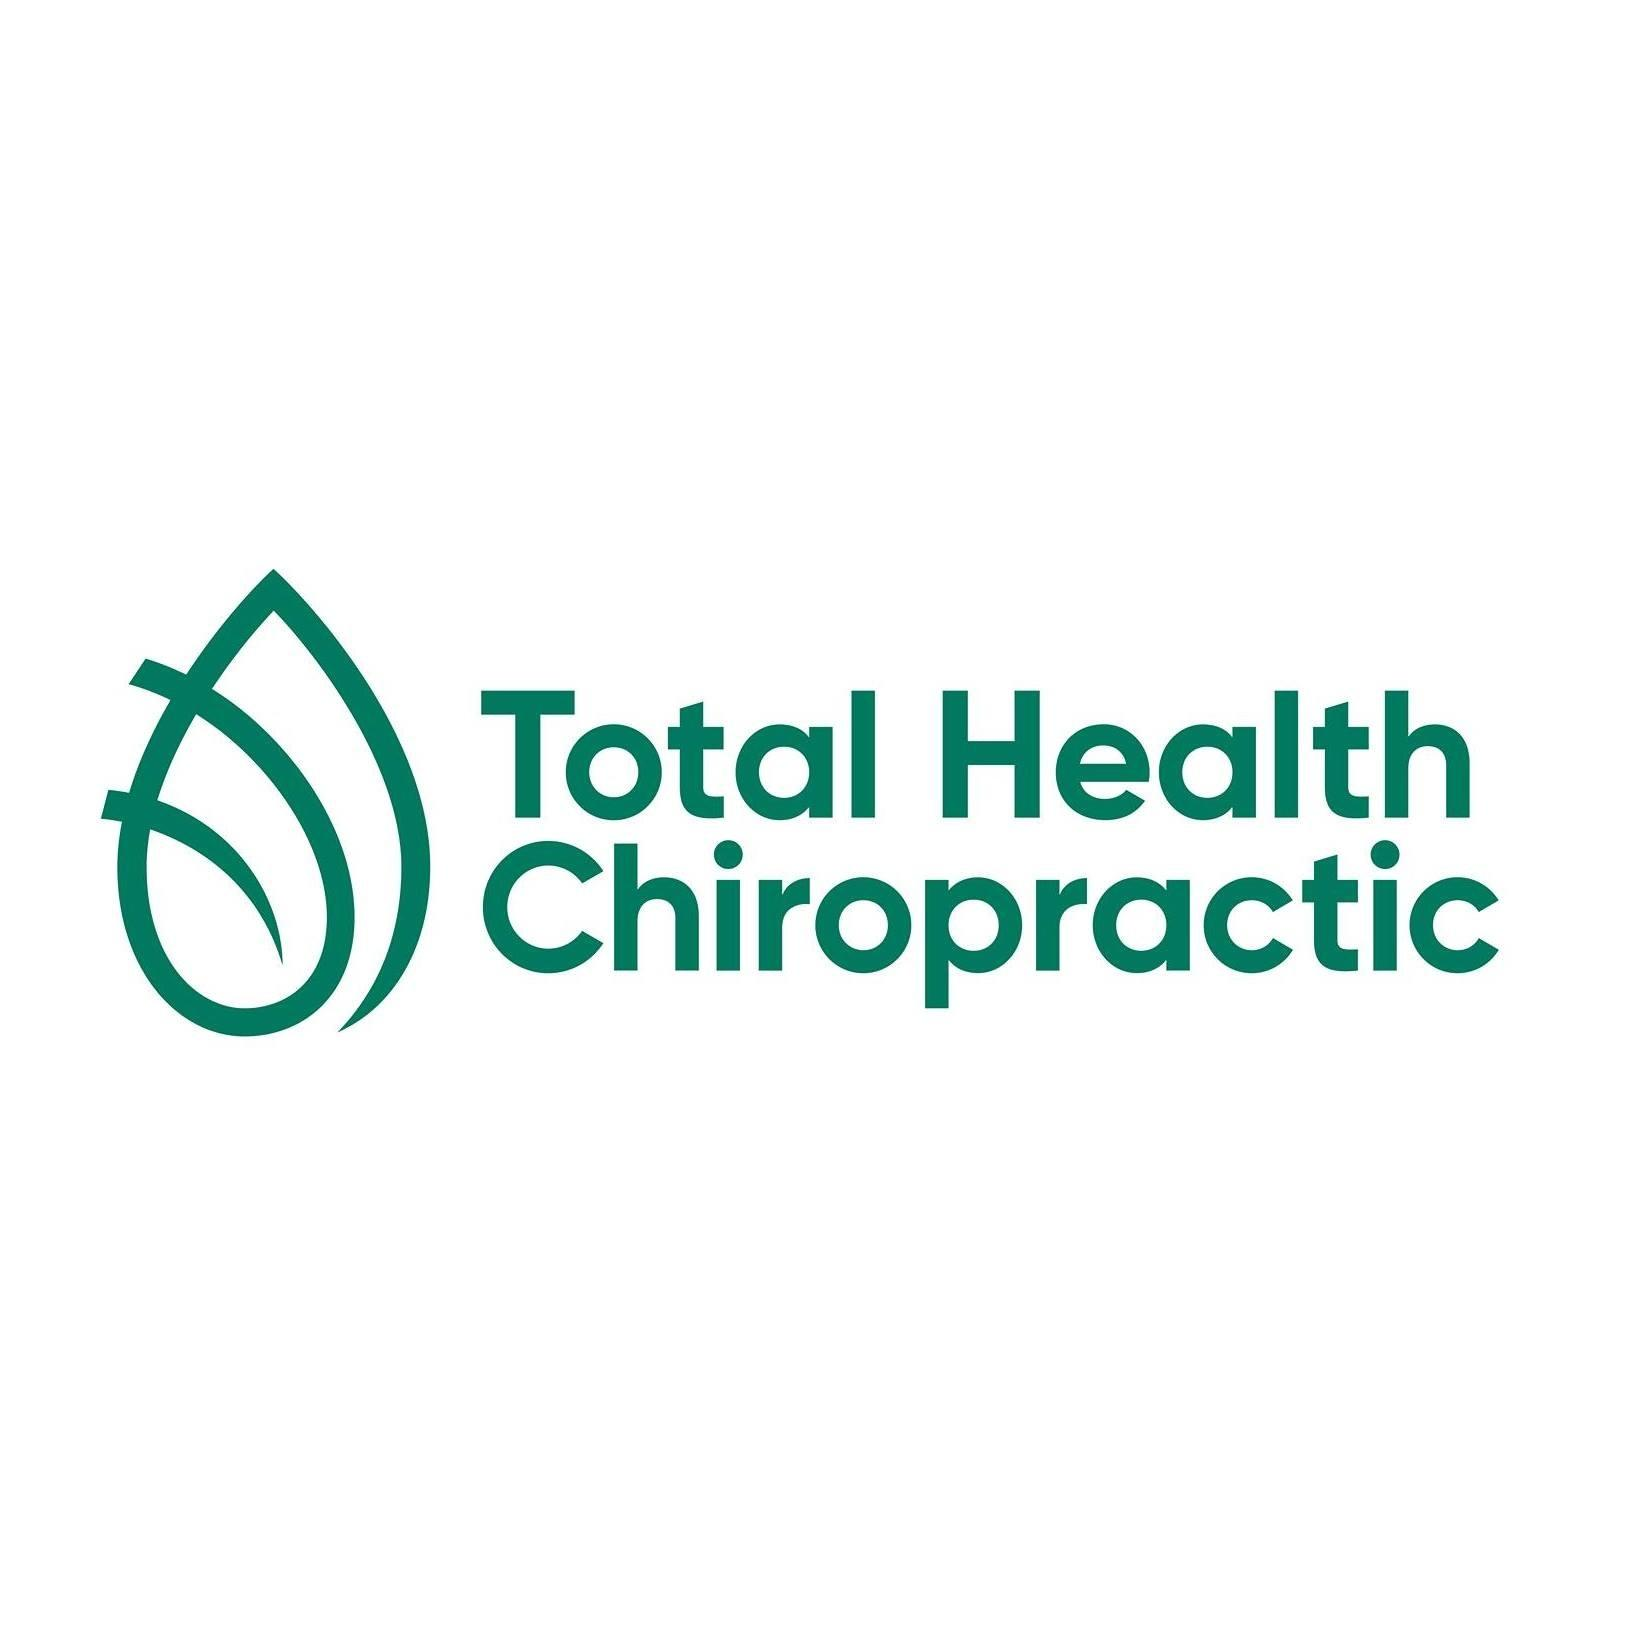 Total Health Chiropractic Yeppoon Yeppoon Qld 4703 07 4819 2902 Showmelocal Com